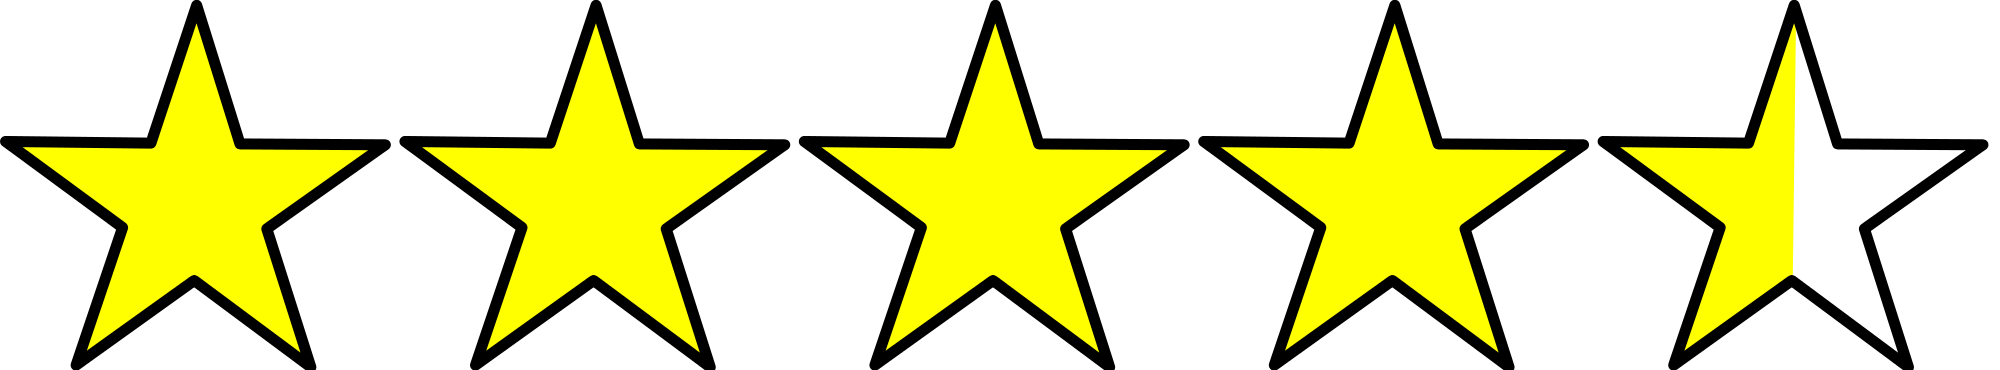 5 out of 5 stars png. File hvof svg wikimedia